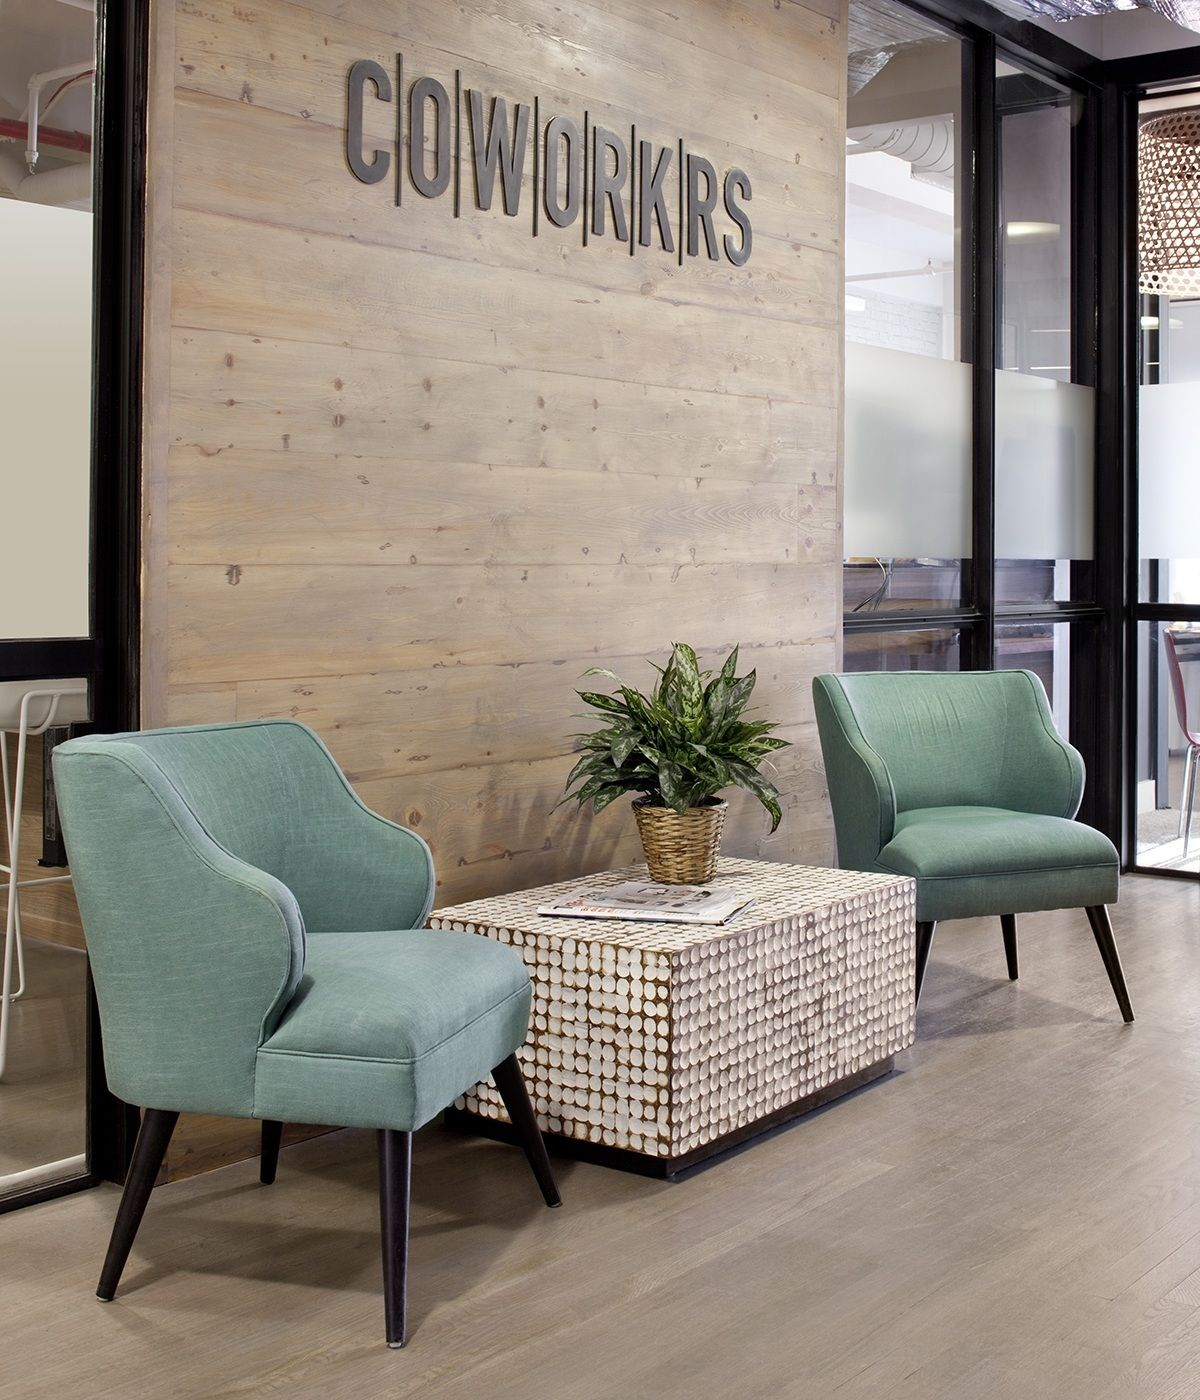 Inside Cowork|rs' New York City Coworking Space #officedesign